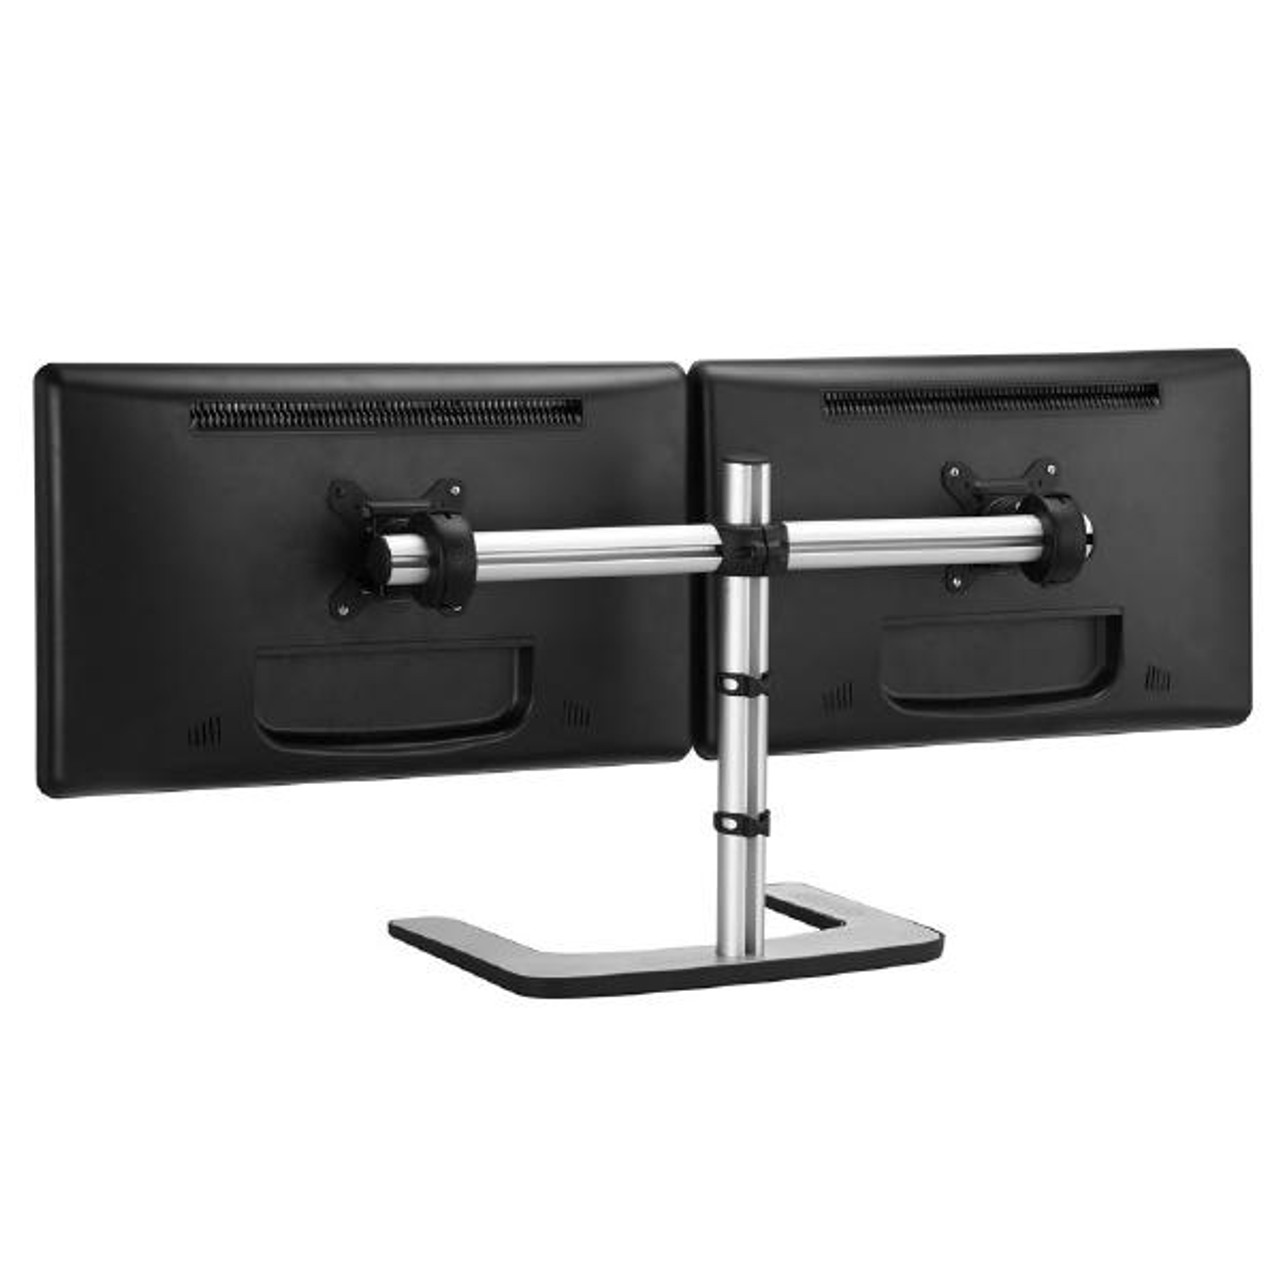 Product image for Atdec Visidec Freestanding Dual Monitor Horizontal Stand | CX Computer Superstore